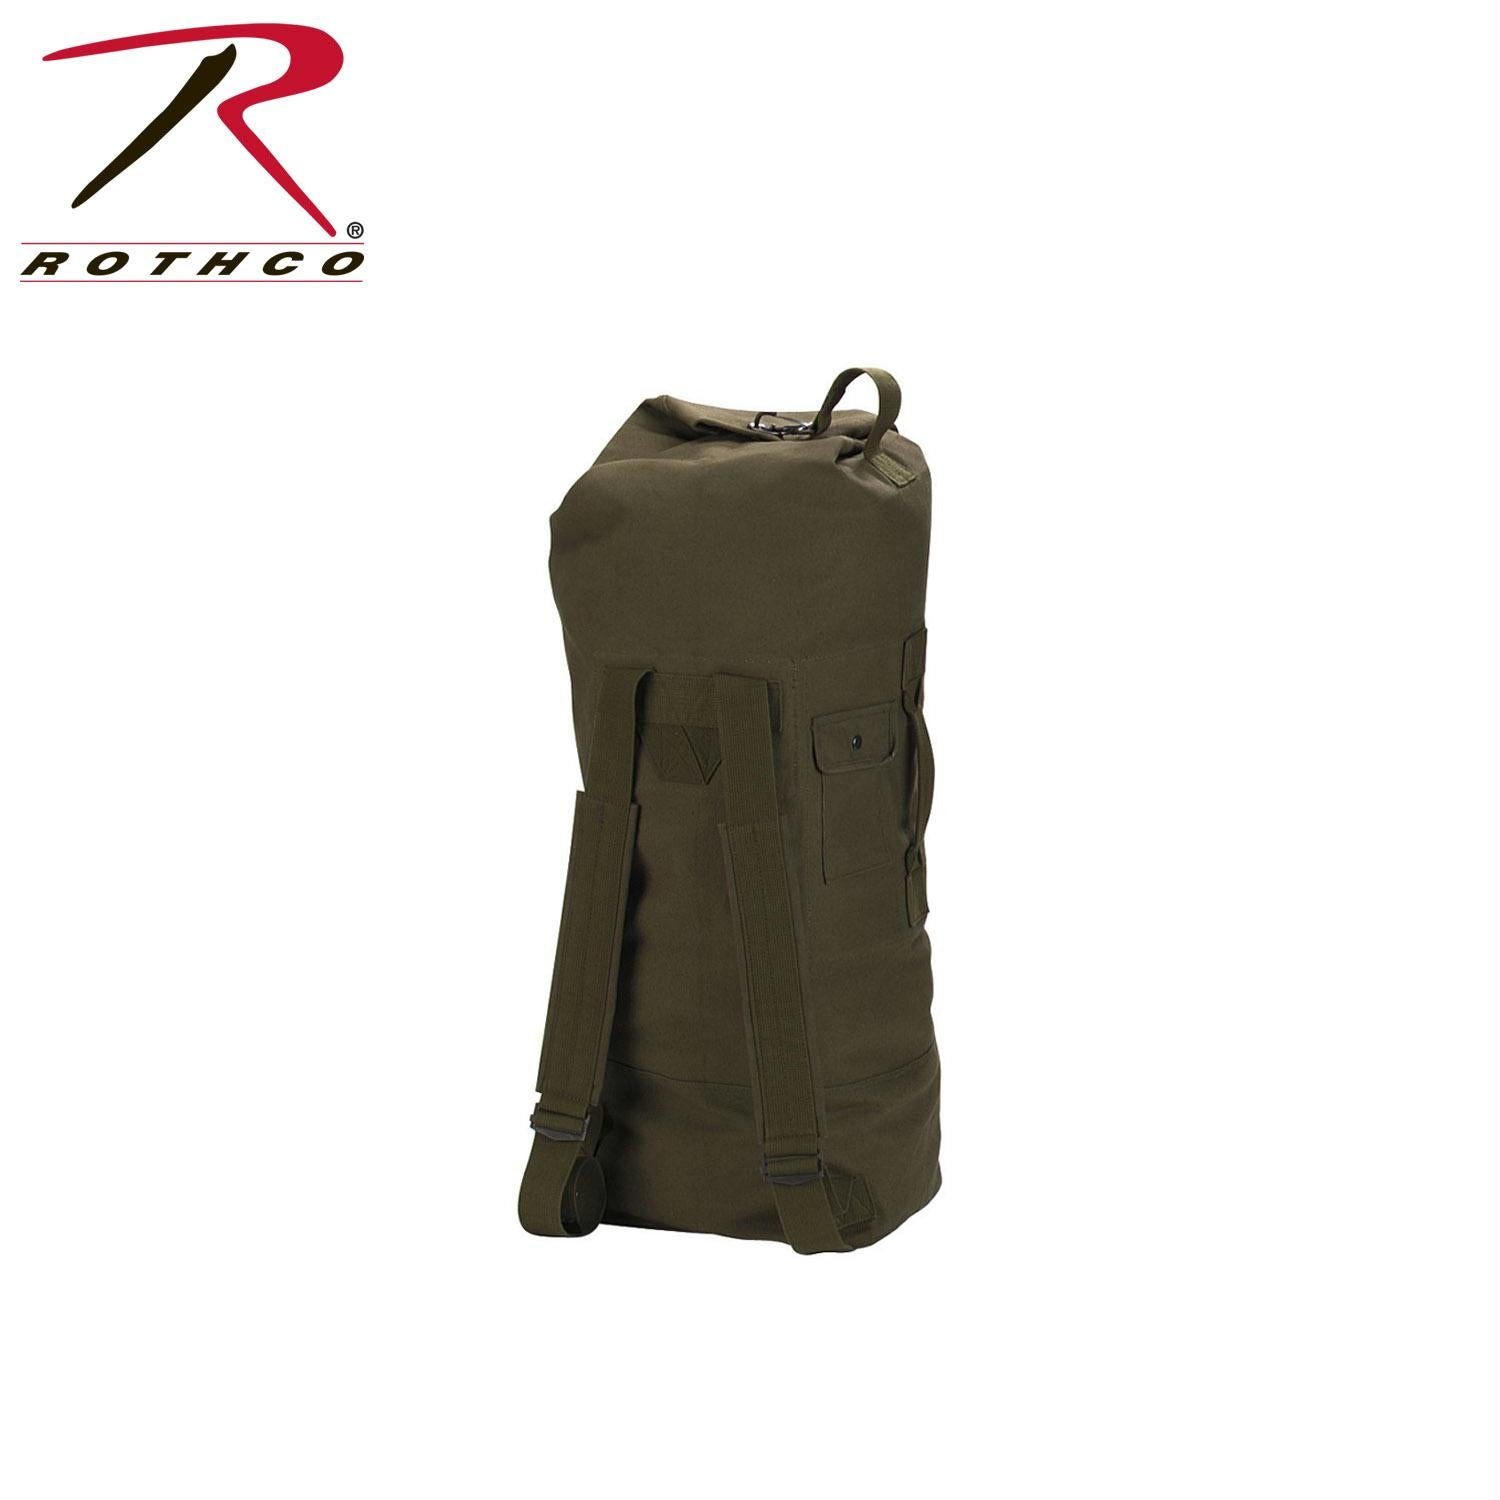 Rothco G.I. Style Canvas Double Strap Duffle Bag - Olive Drab